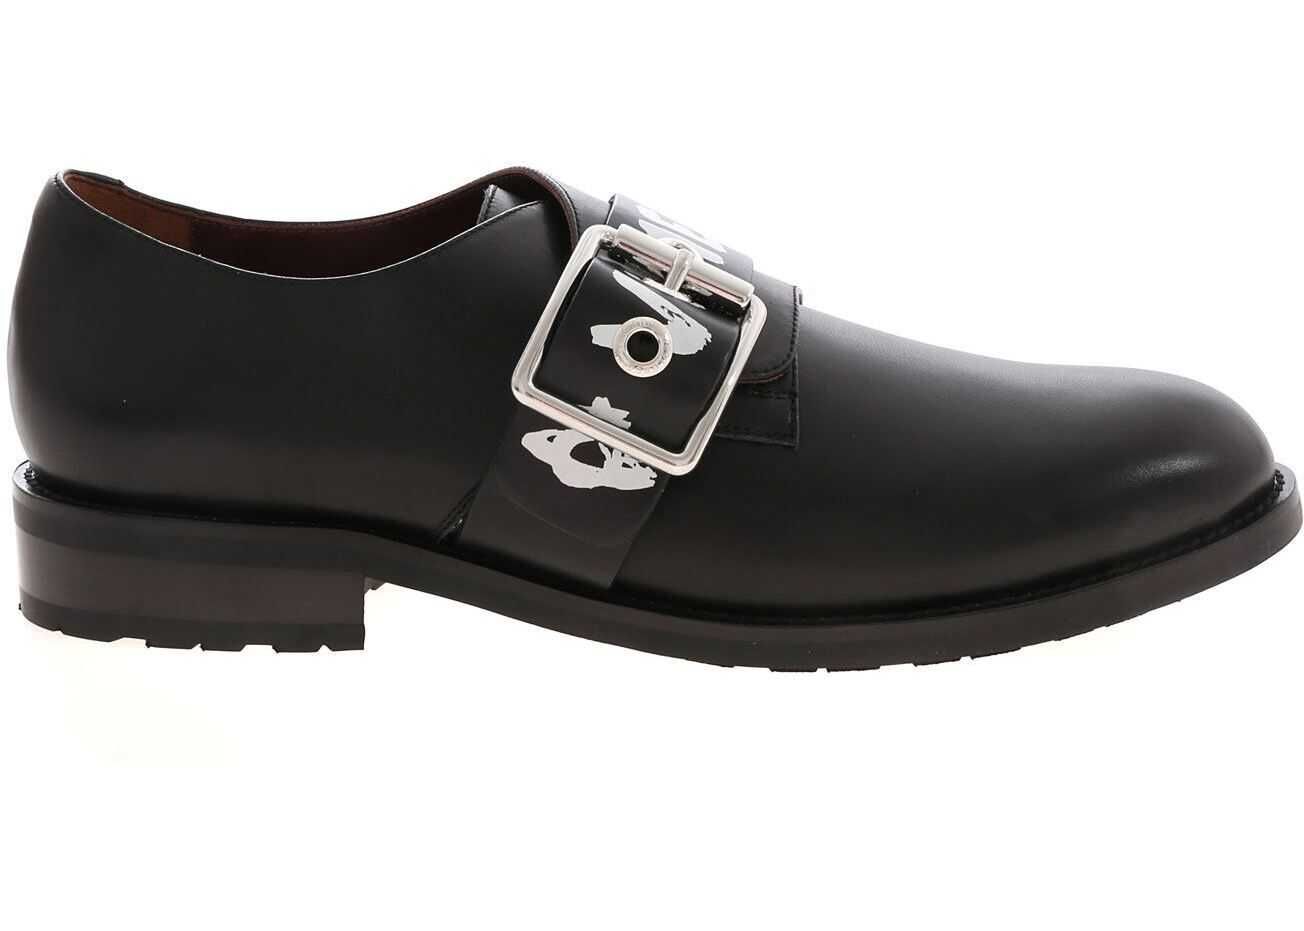 Graffiti Print Monk Strap Shoes In Black thumbnail